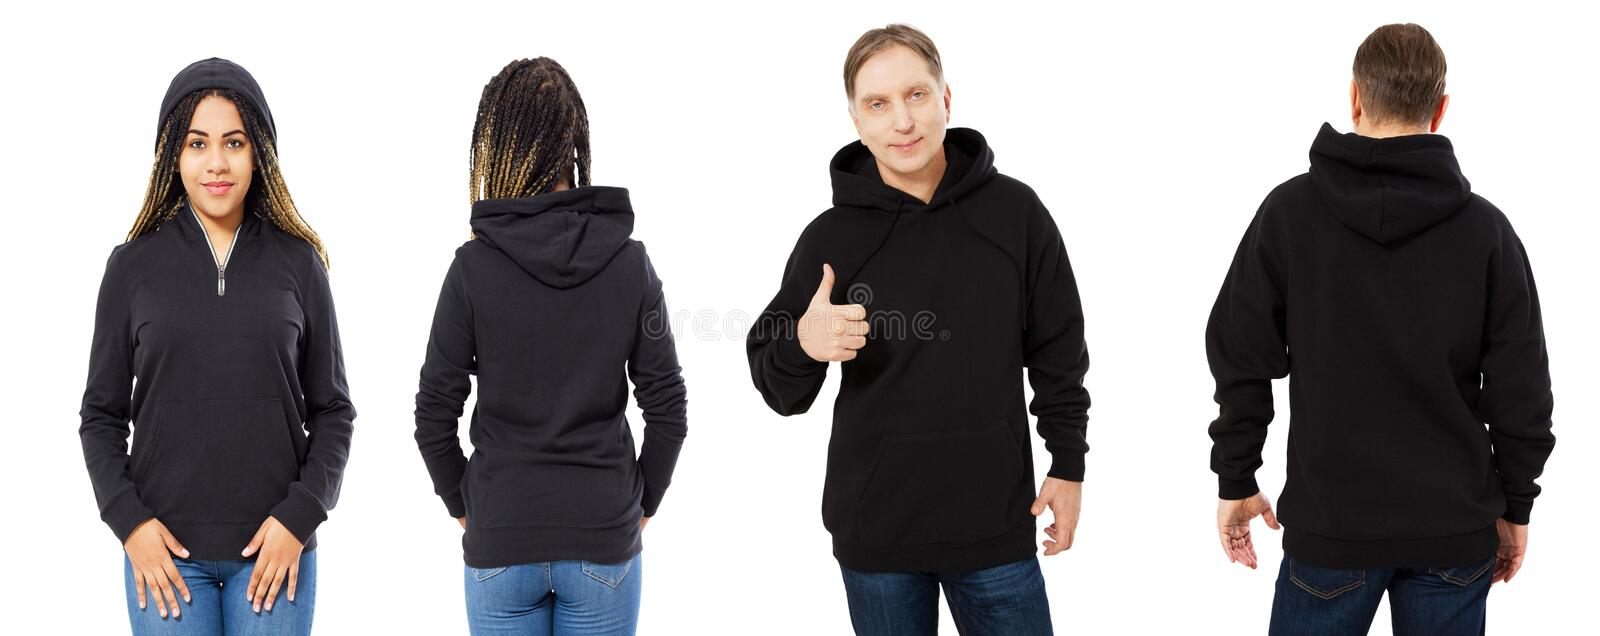 Black beautiful woman and middle-aged man in black hoodie mock up isolated over white background royalty free stock photo